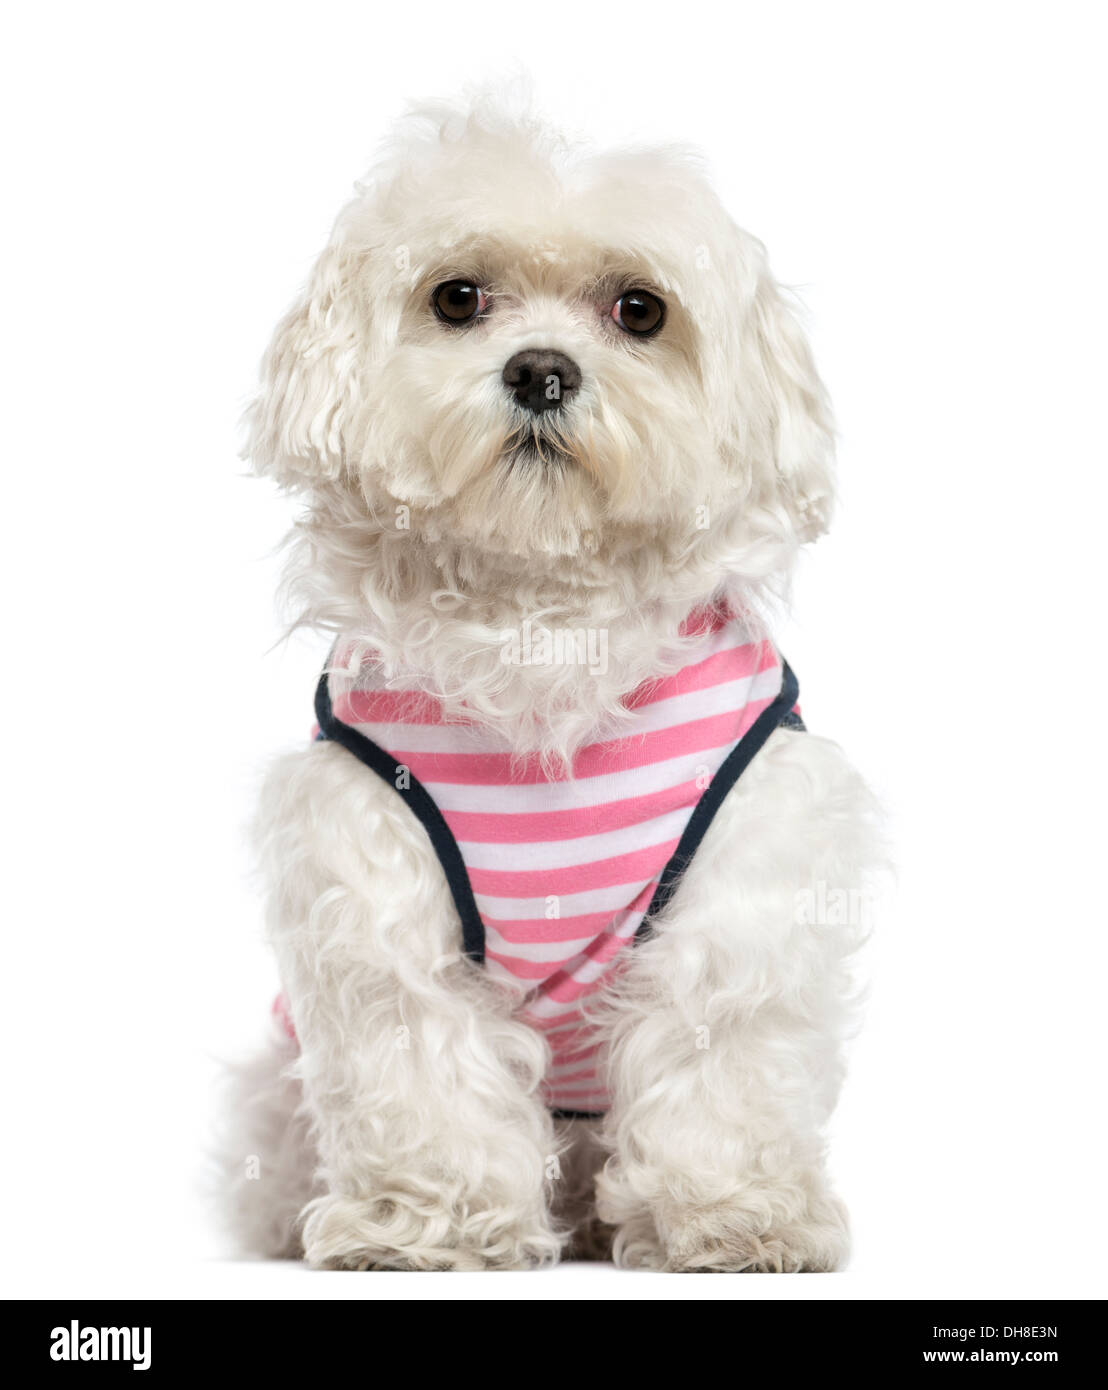 Maltese with striped shirt sitting against white background - Stock Image